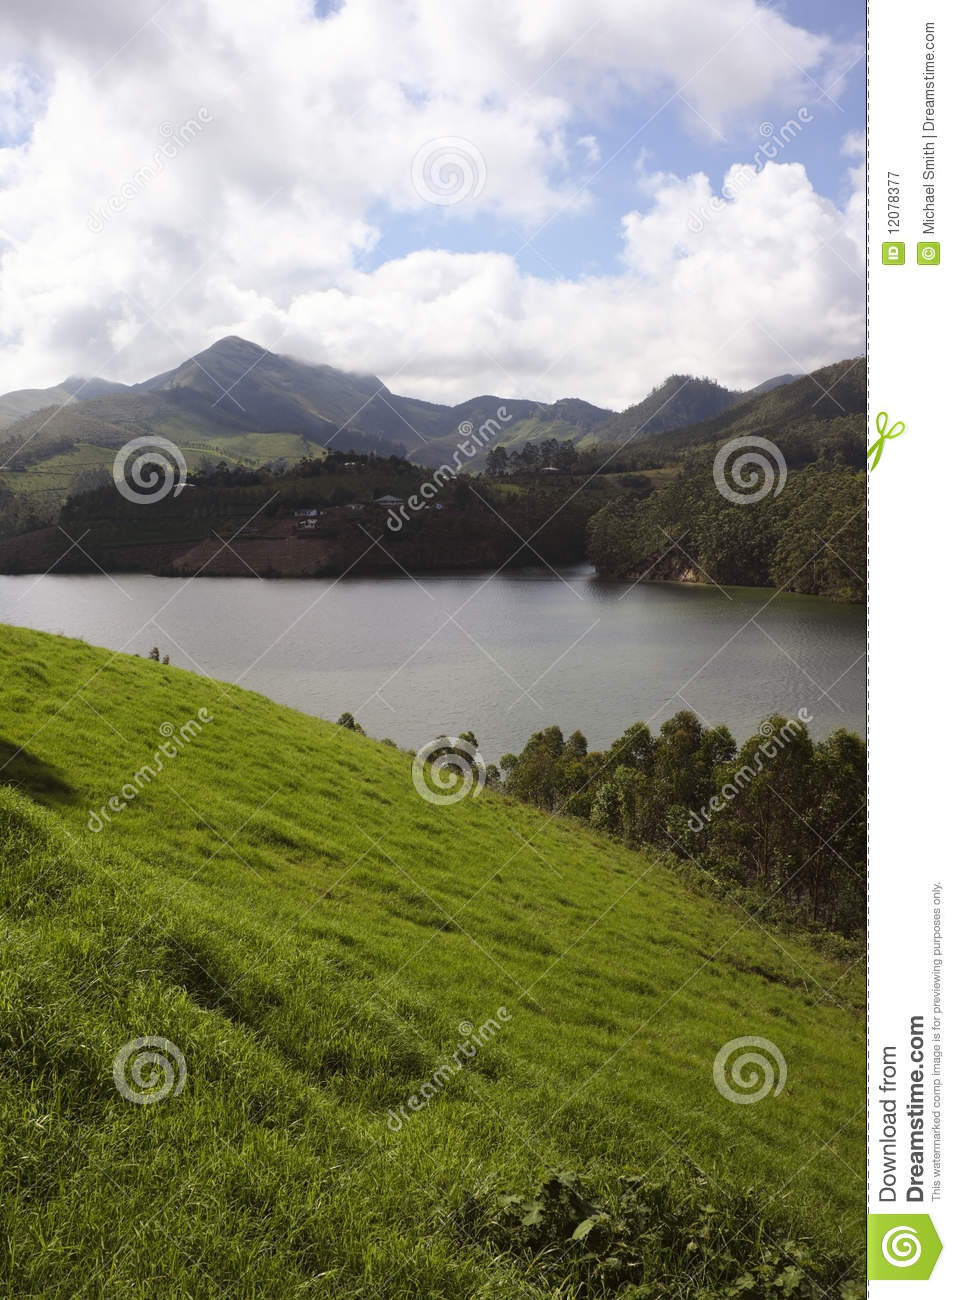 View of periyar river of south india and the surrounding hillsides.